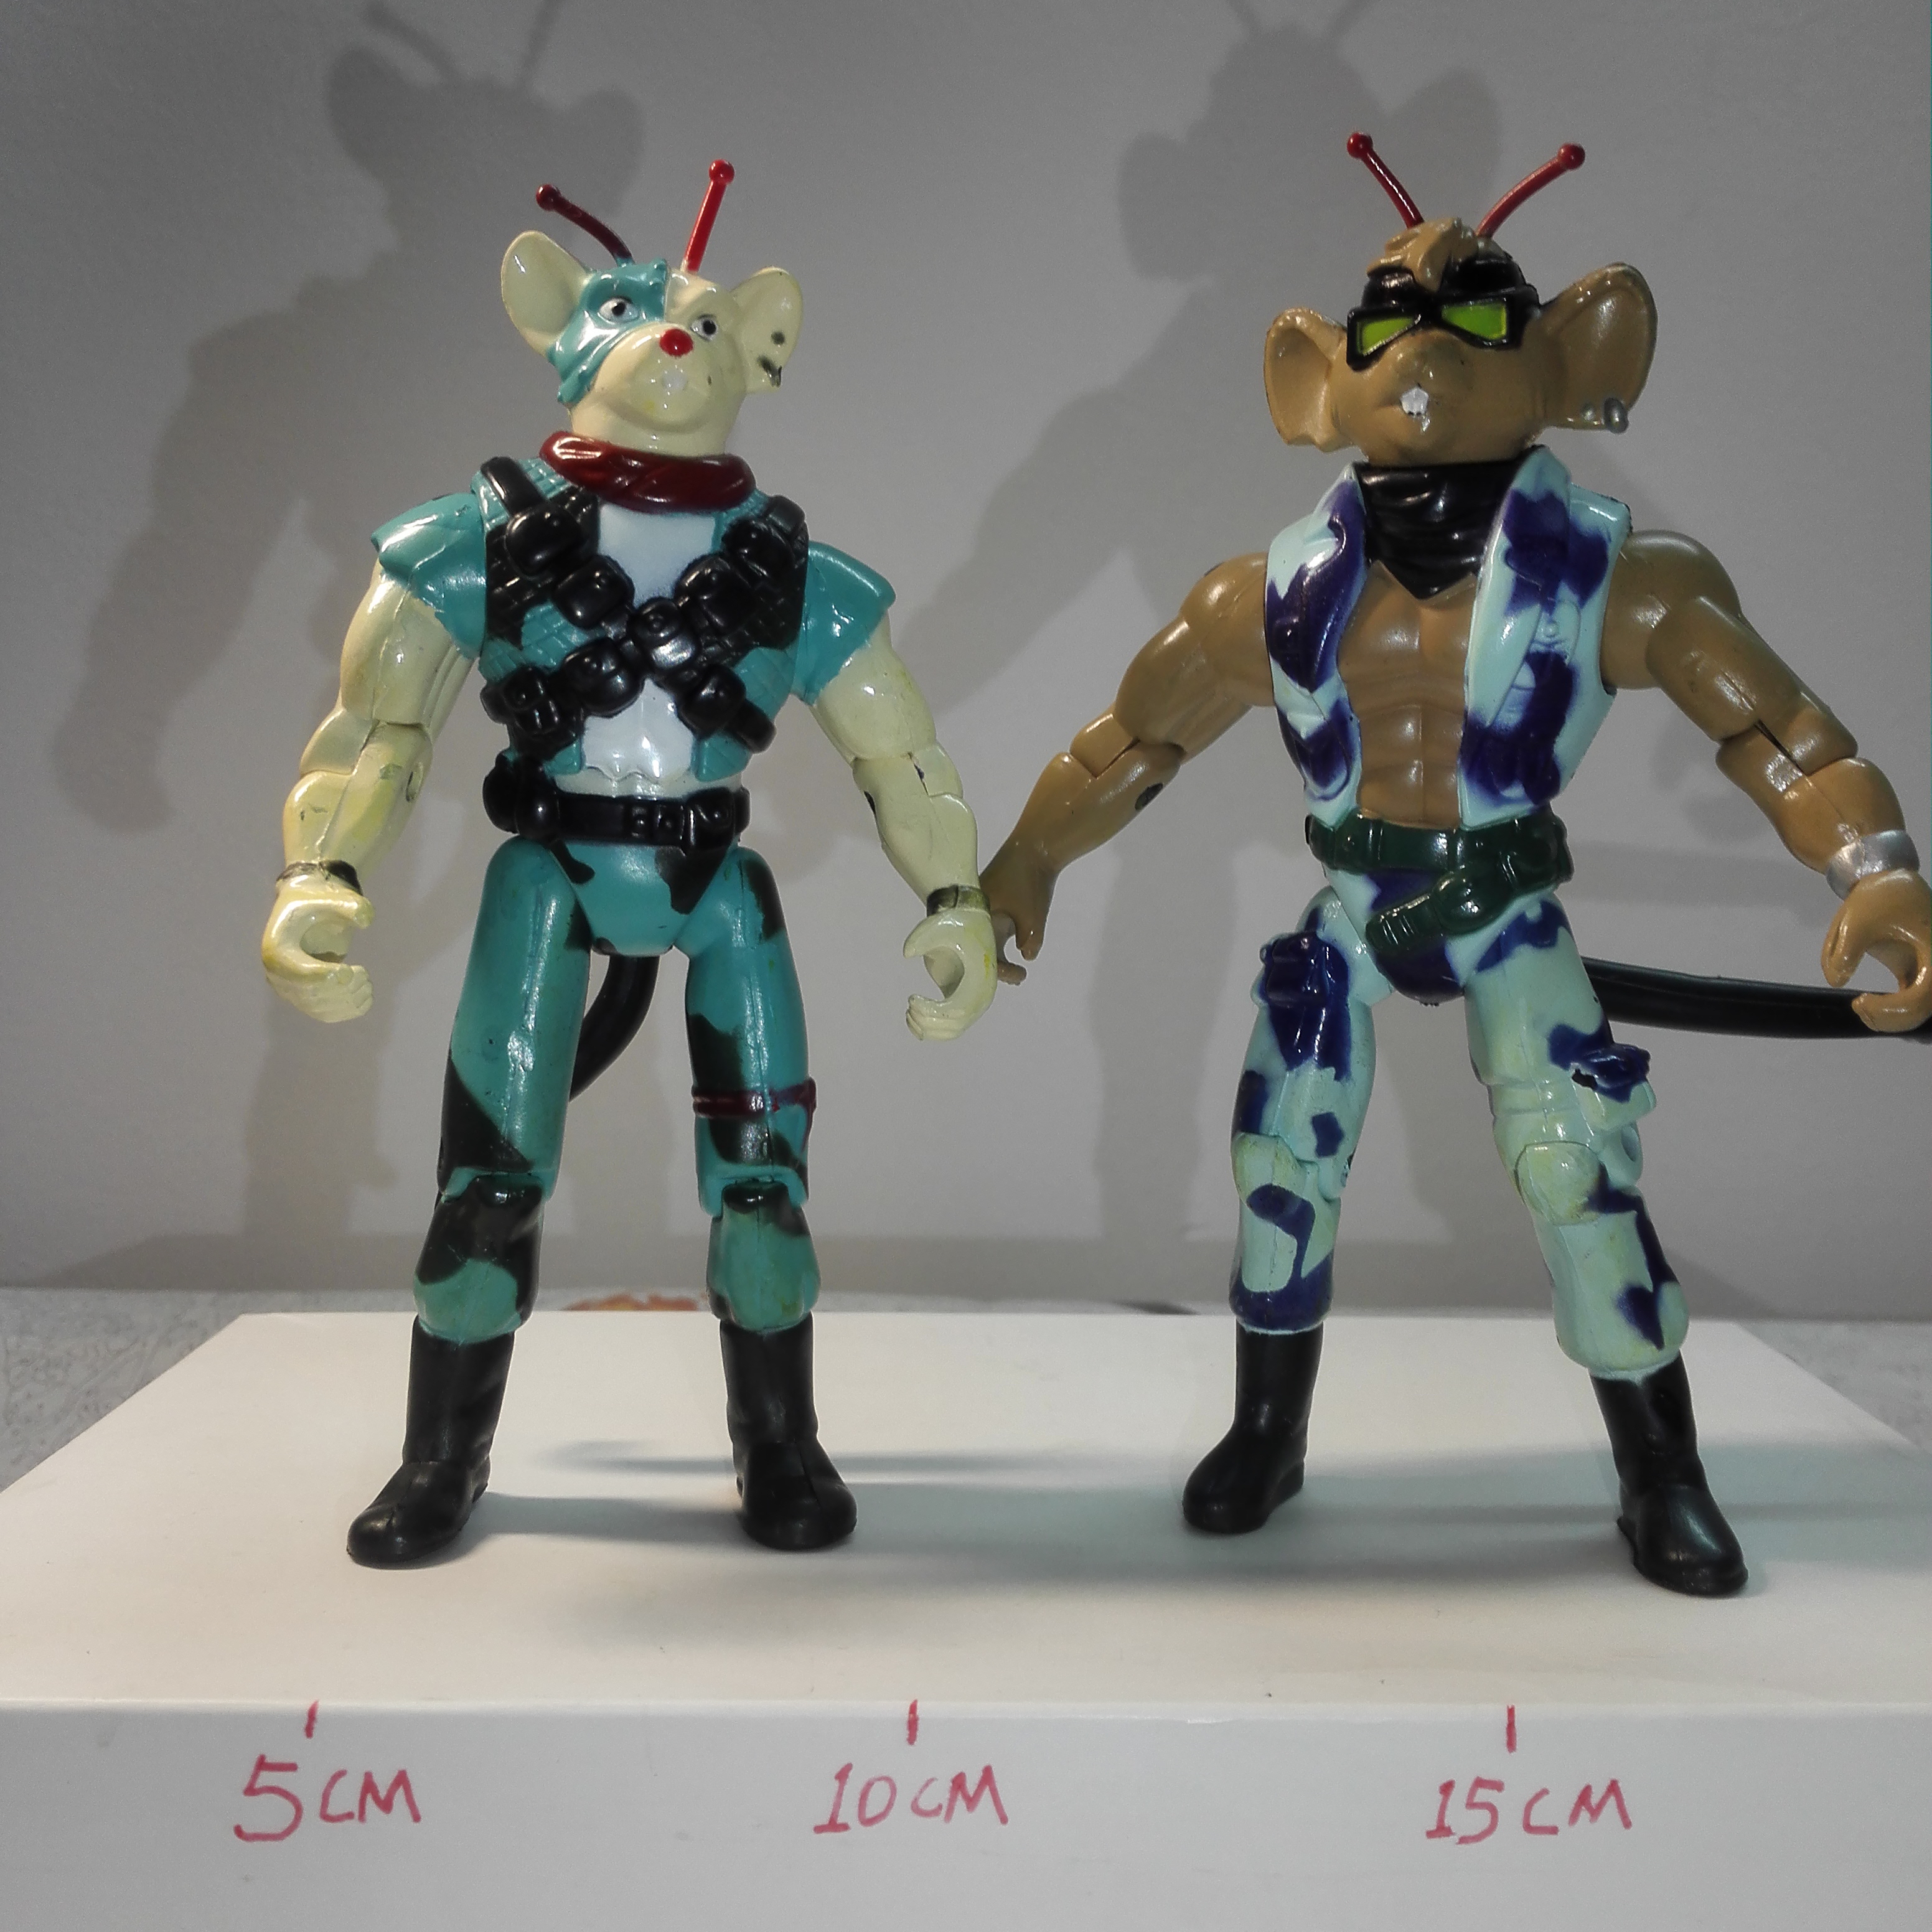 2pic/set Biker Mice From Mars Marvel Heroes Figures Cartoon Action Original Factory High Quality Imperfect Toys For Children